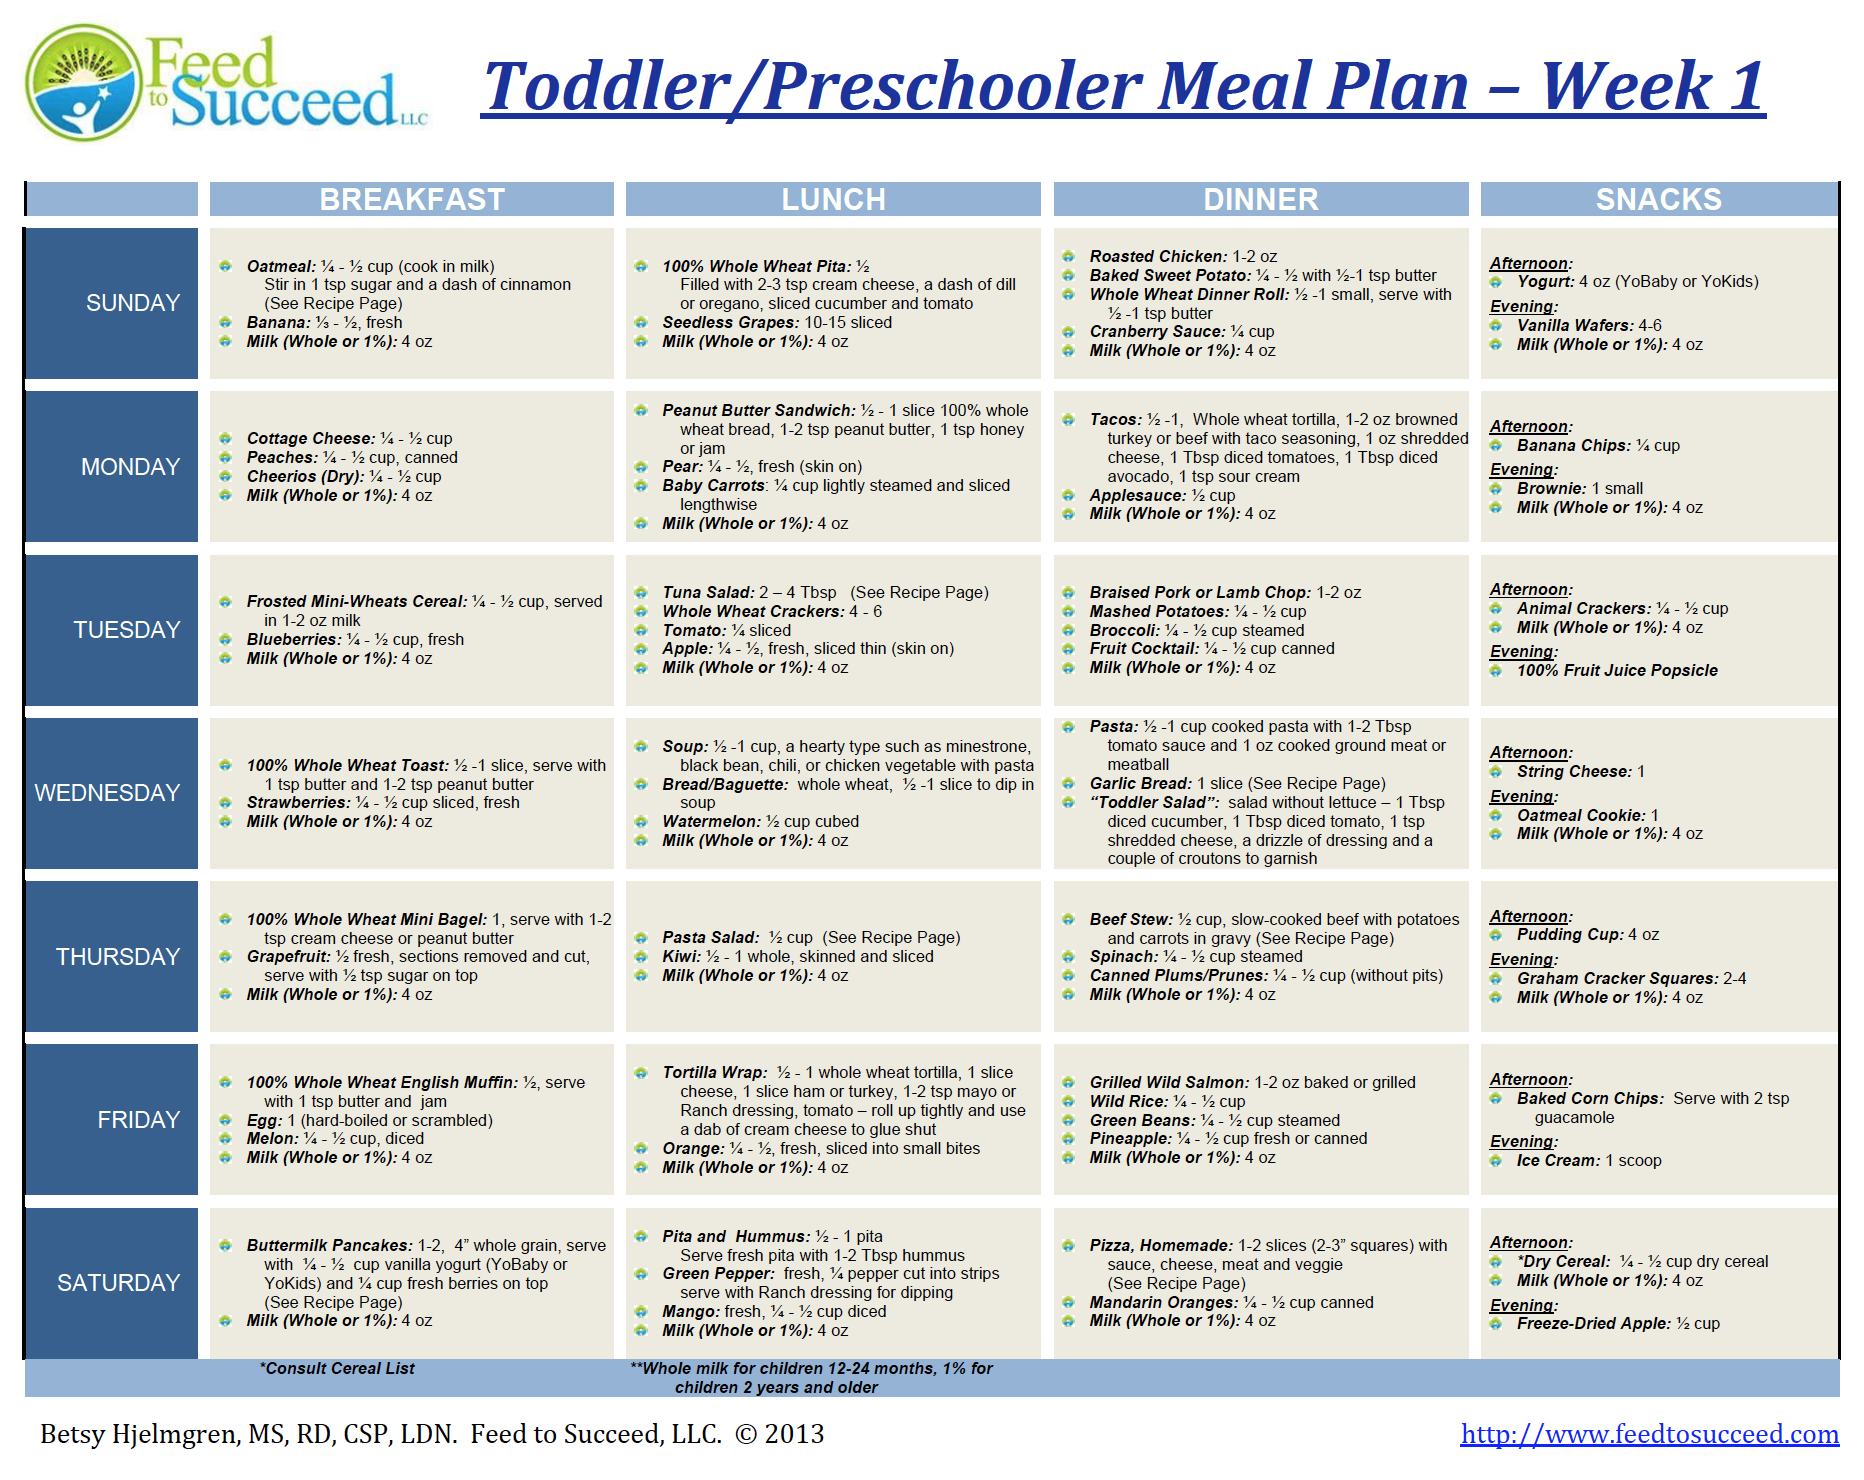 Pediatric Meal Plans by Condition | Feed To Succeed